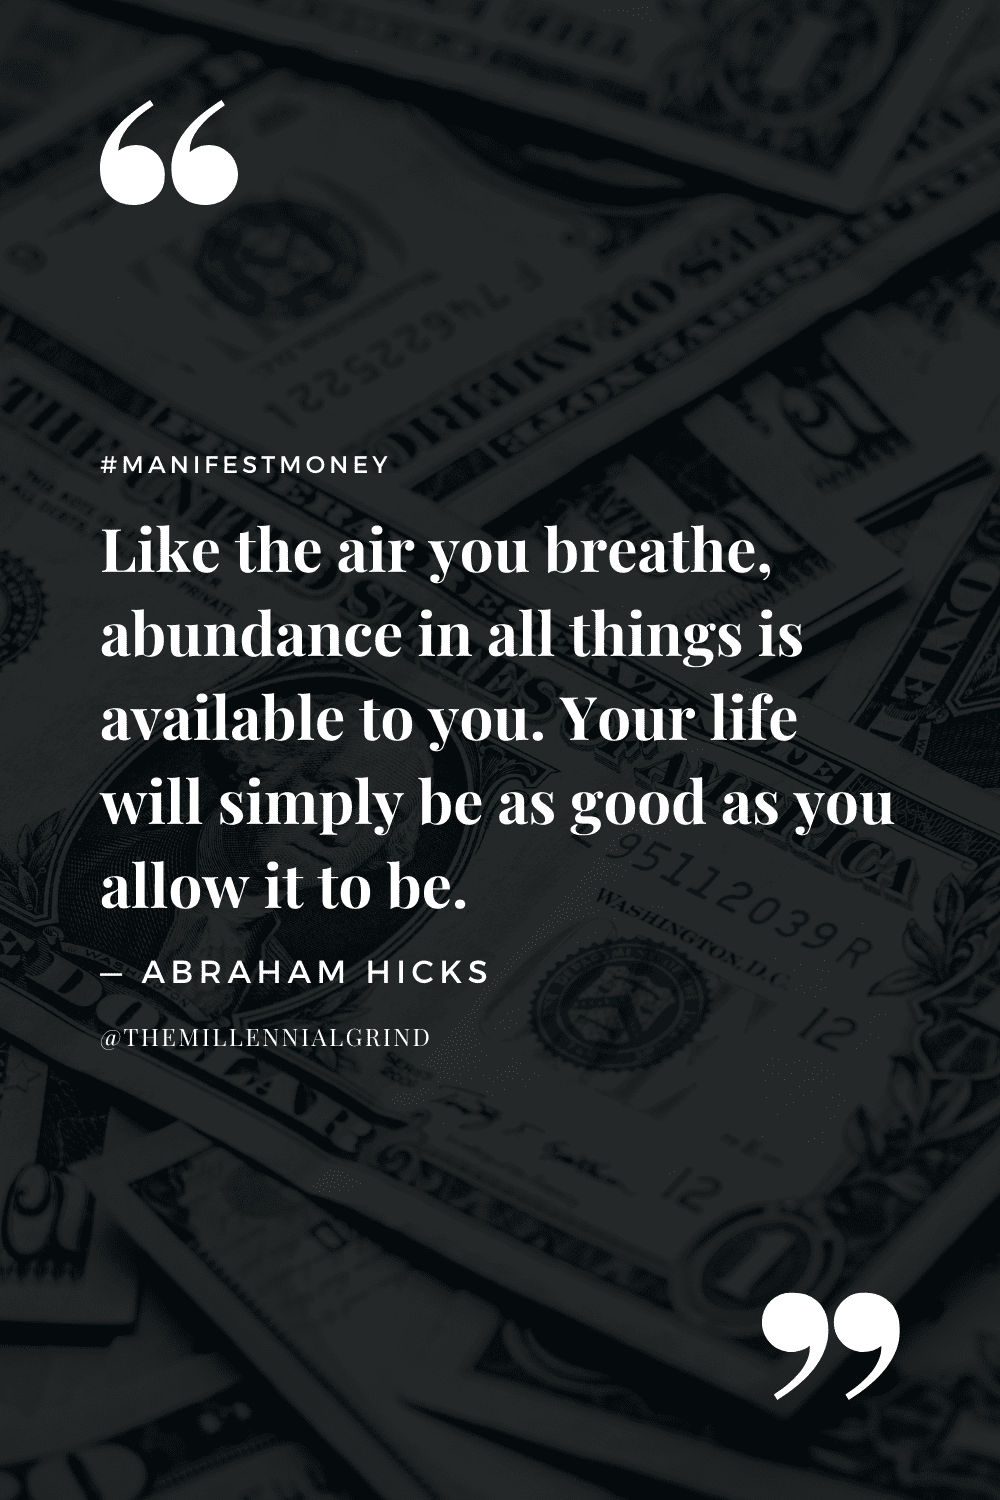 """""""Like the air you breathe, abundance in all things is available to you. Your life will simply be as good as you allow it to be."""" – Abraham Hicks"""